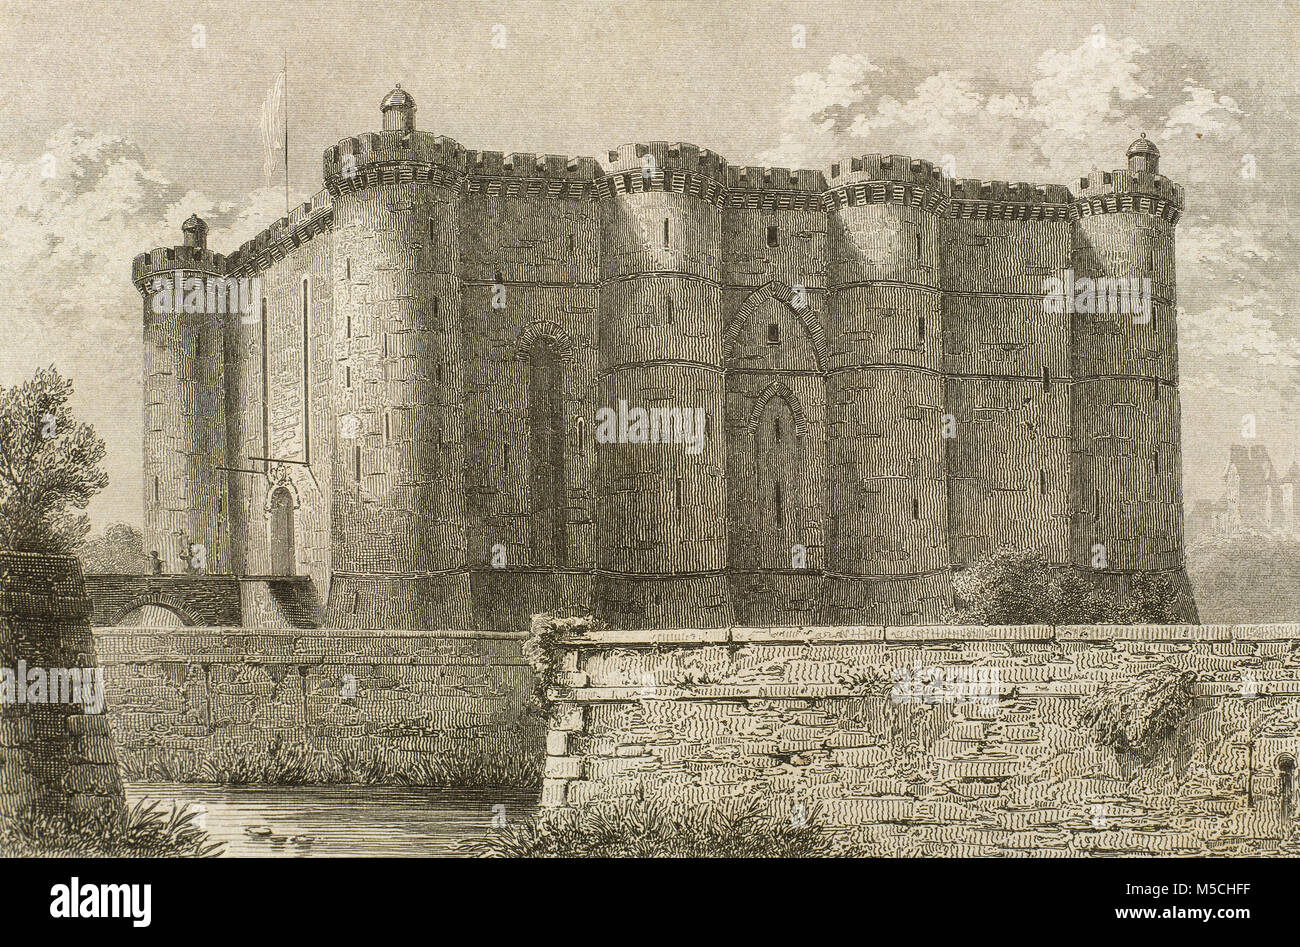 Bastille. Medieval fortress built by order of Charles V between 1370 and 1380, to defend the eastern approach to - Stock Image